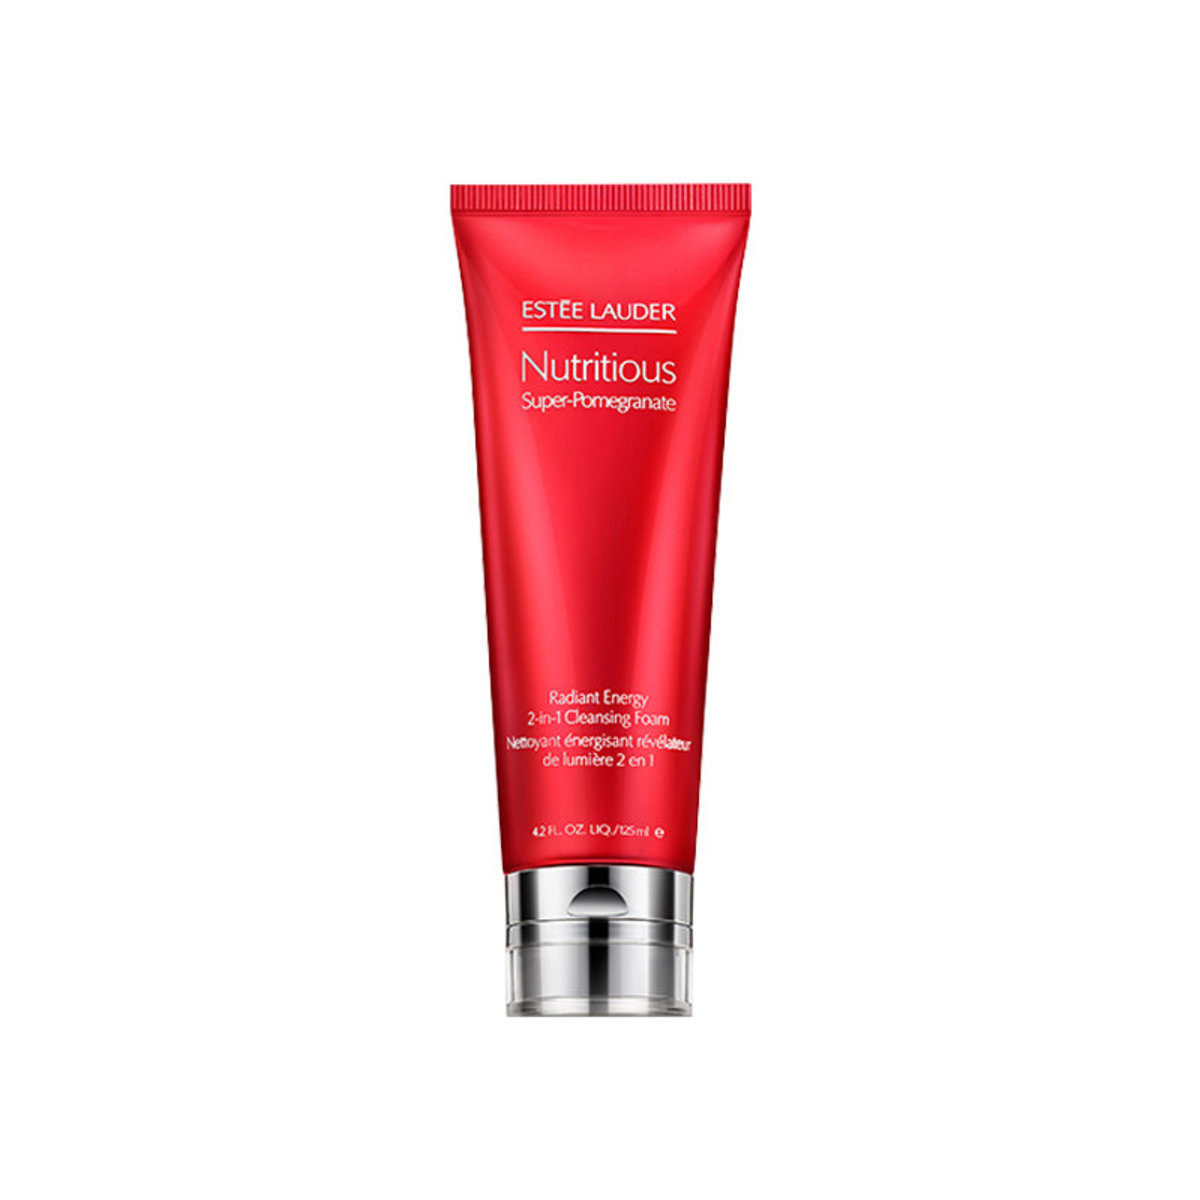 Nutritious Super-Pomegranate Radiant Energy 2-in-1 Cleansing Foam (125ml) [Parallel Import]